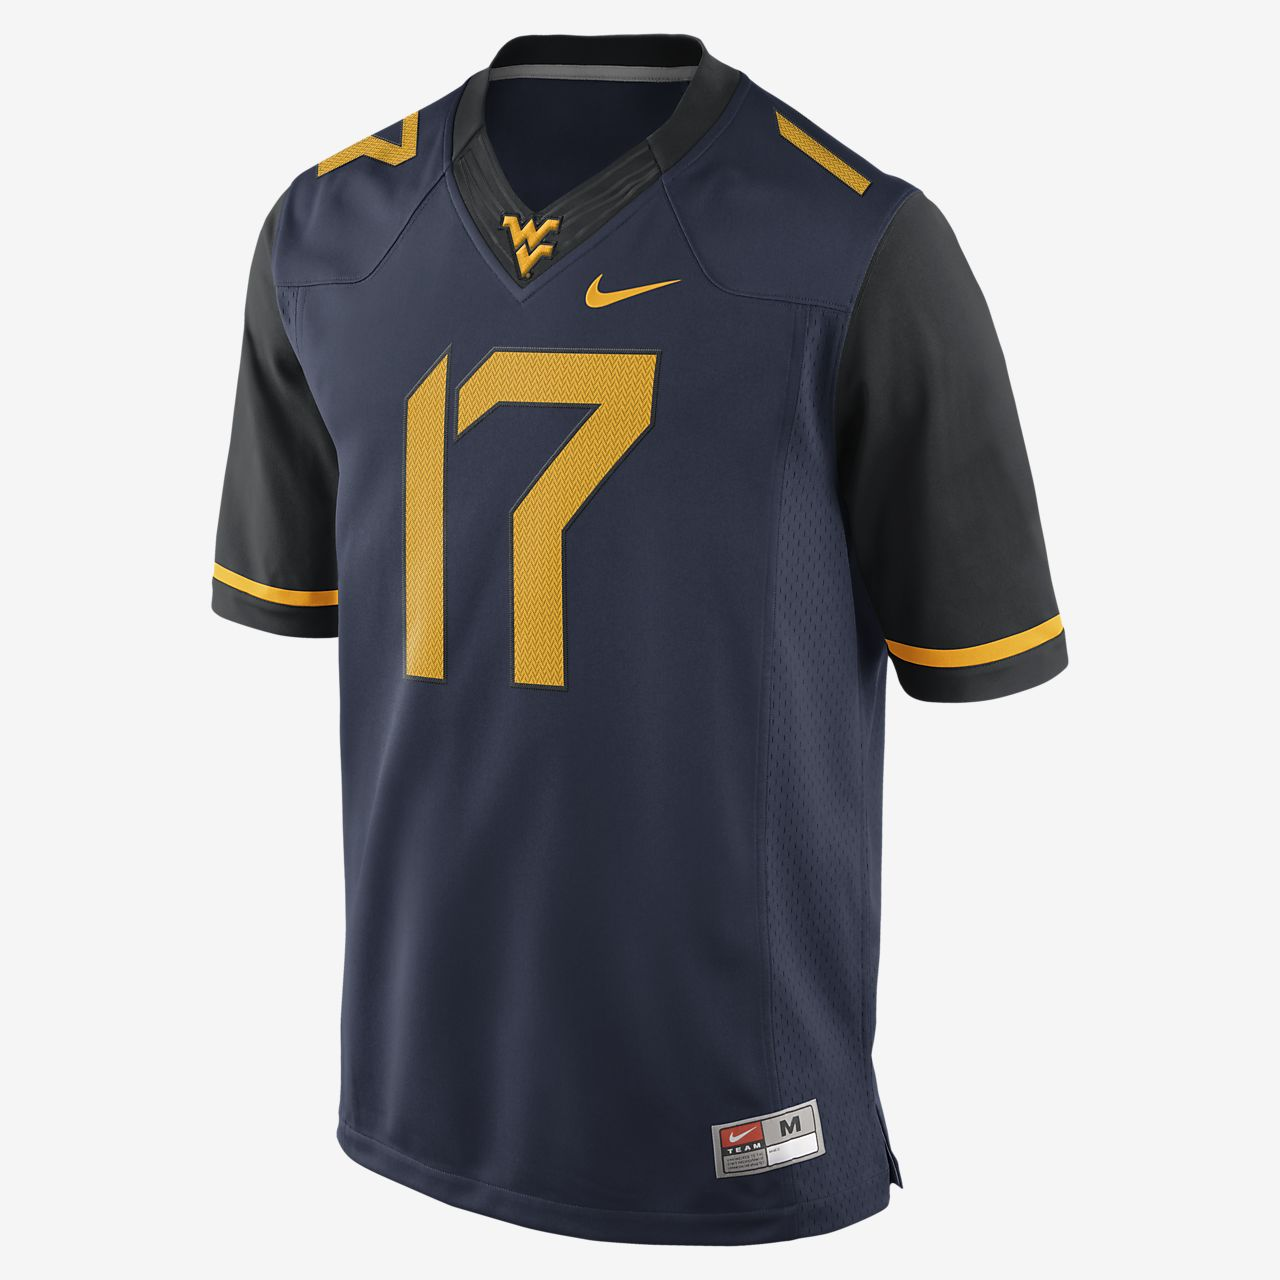 Limited Jersey Men's Nike west College Football Virginia vOzqnUY8